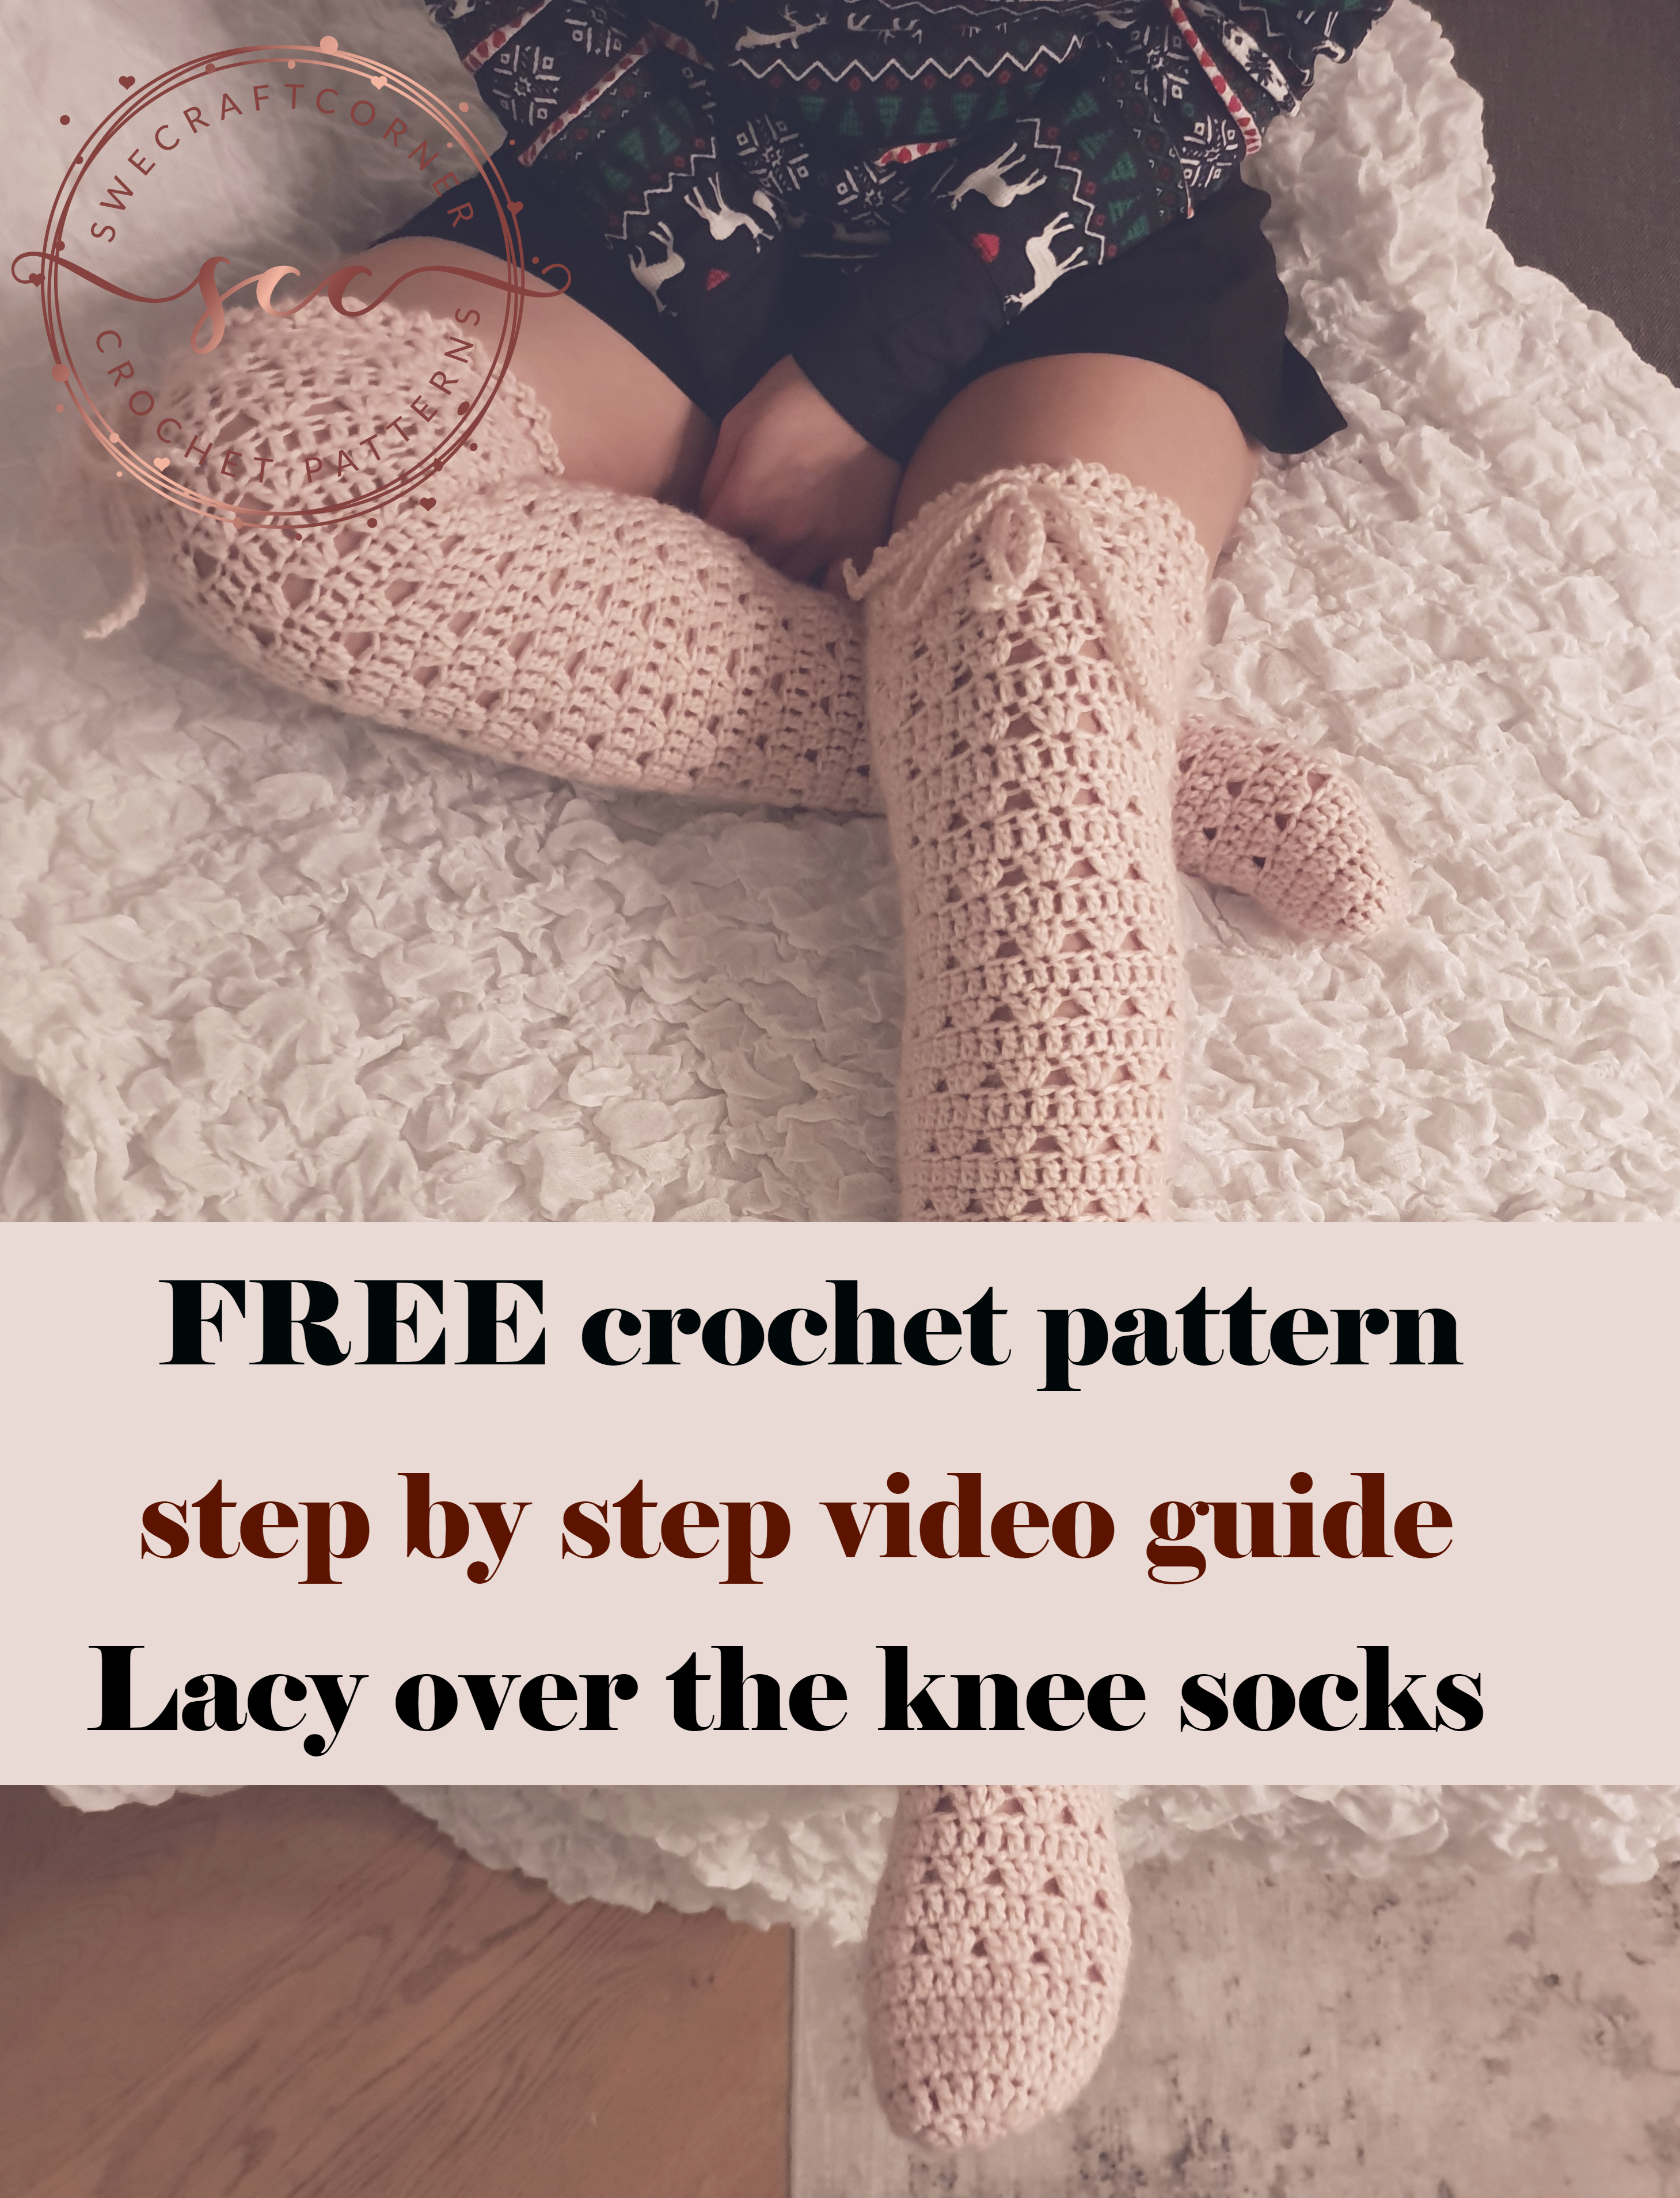 Romatic lacy over the knee socks FREE pattern! US TERMS